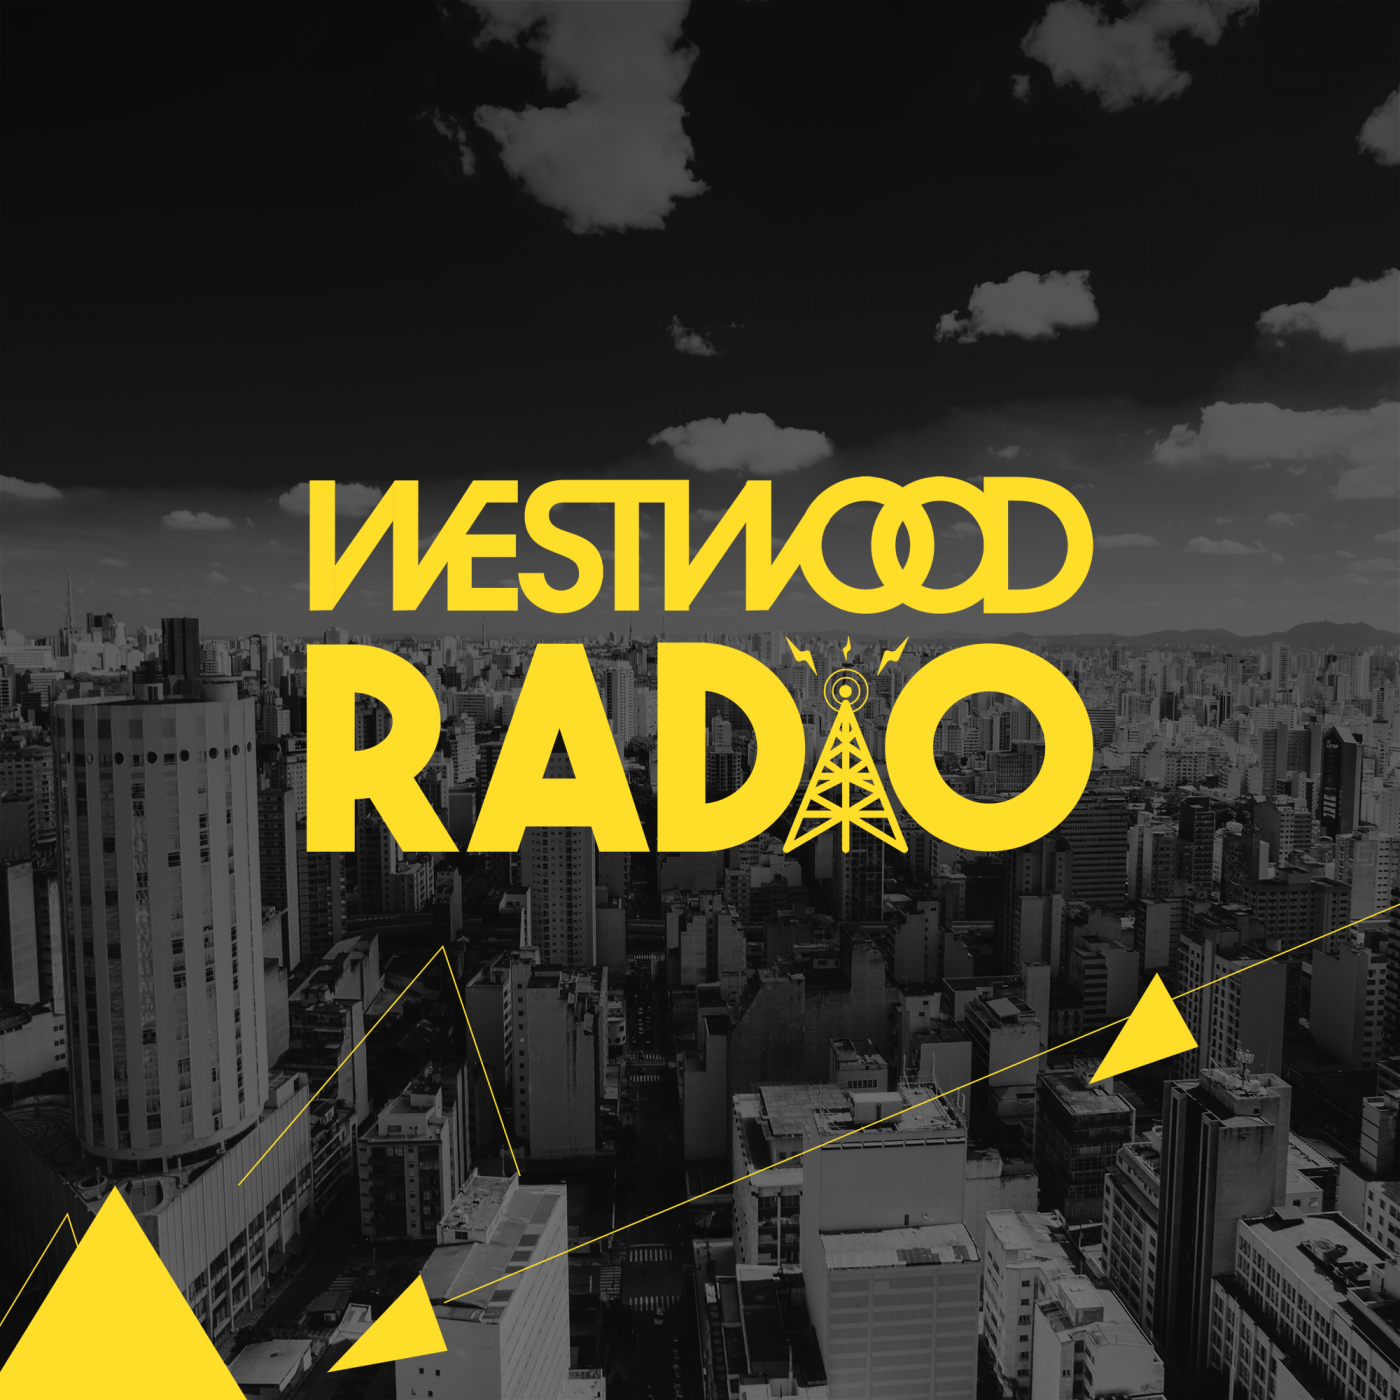 Westwood Radio 006 - The Funk Hunters Westwood Radio podcast